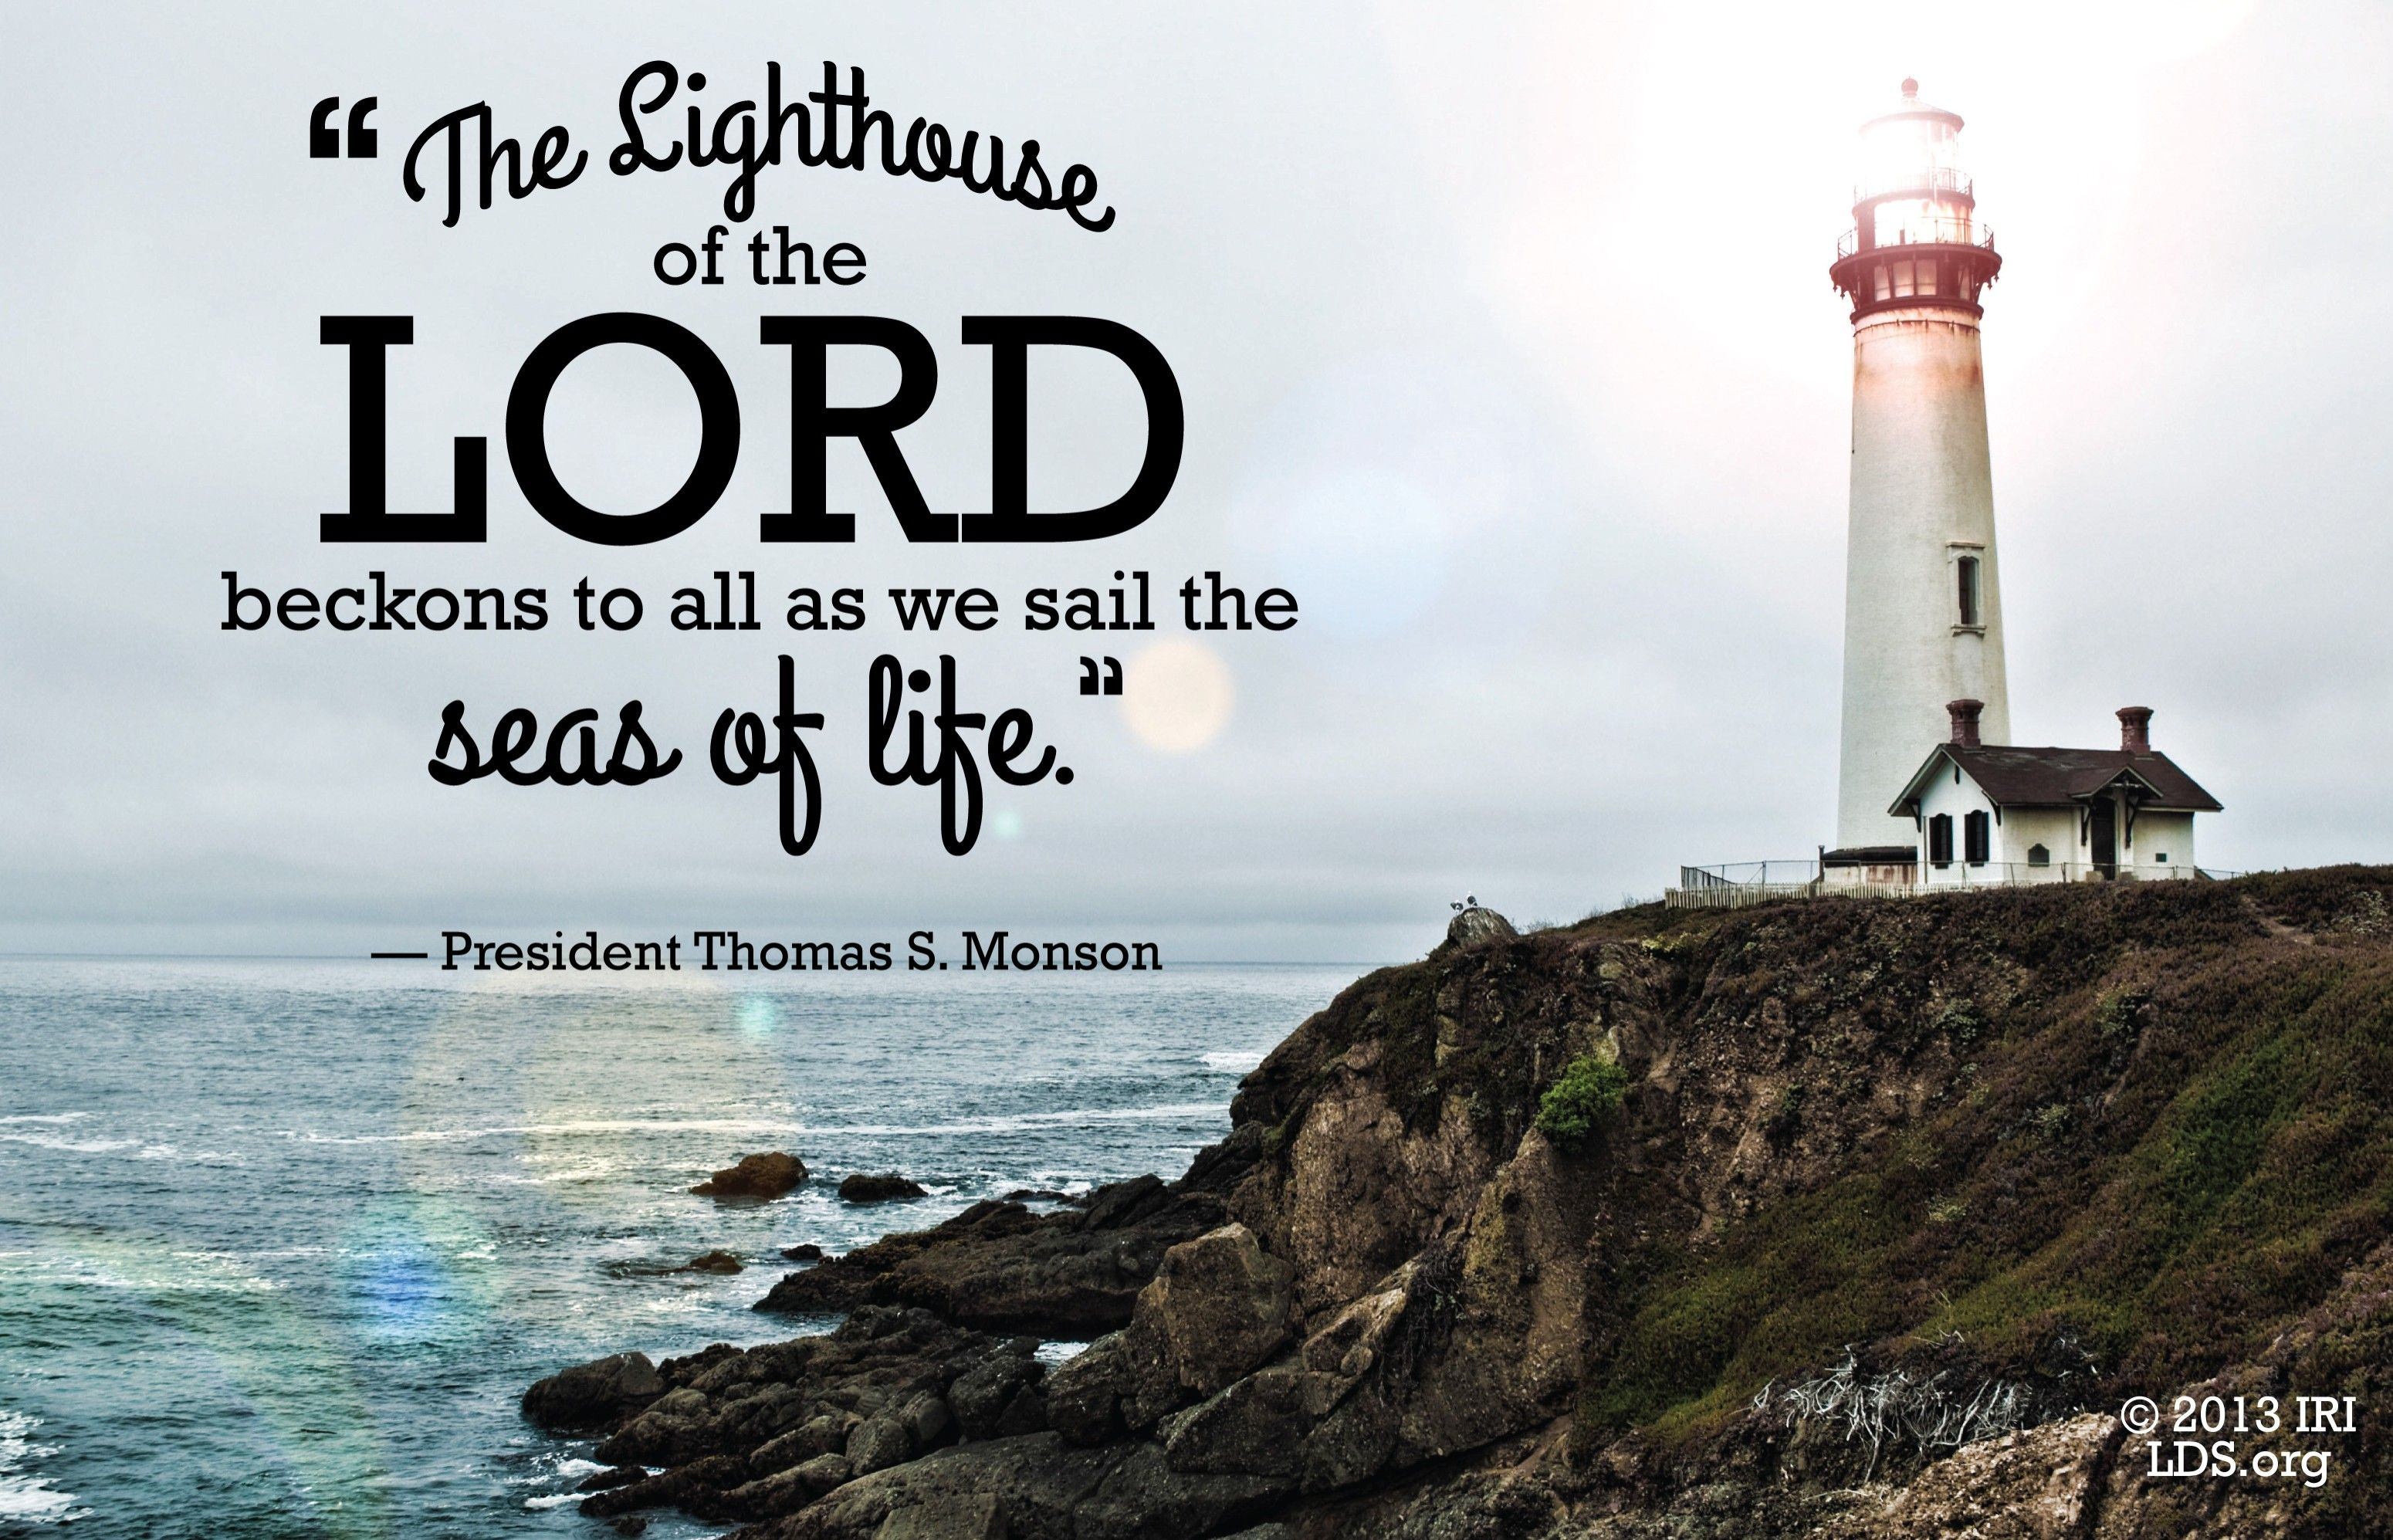 """""""The lighthouse of the Lord beckons to all as we sail the seas of life.""""—President Thomas S. Monson, """"Sailing Safely the Seas of Life"""""""